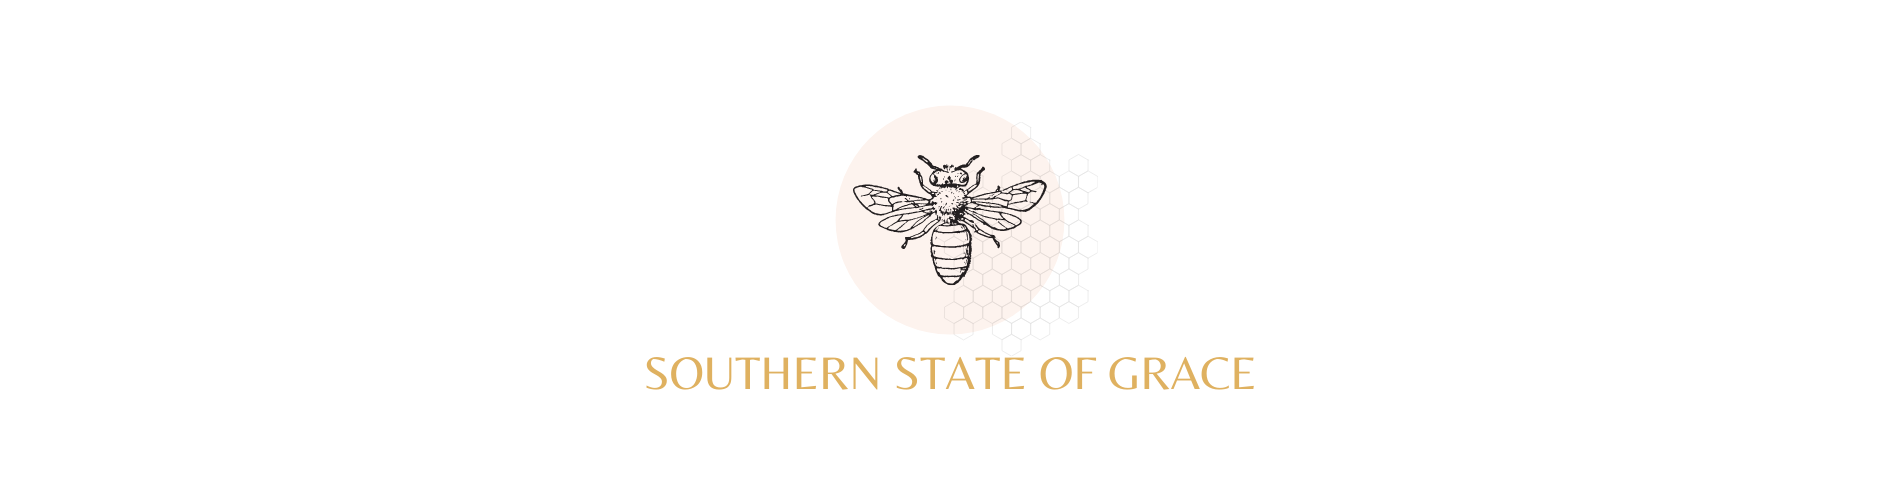 Southern State of Grace